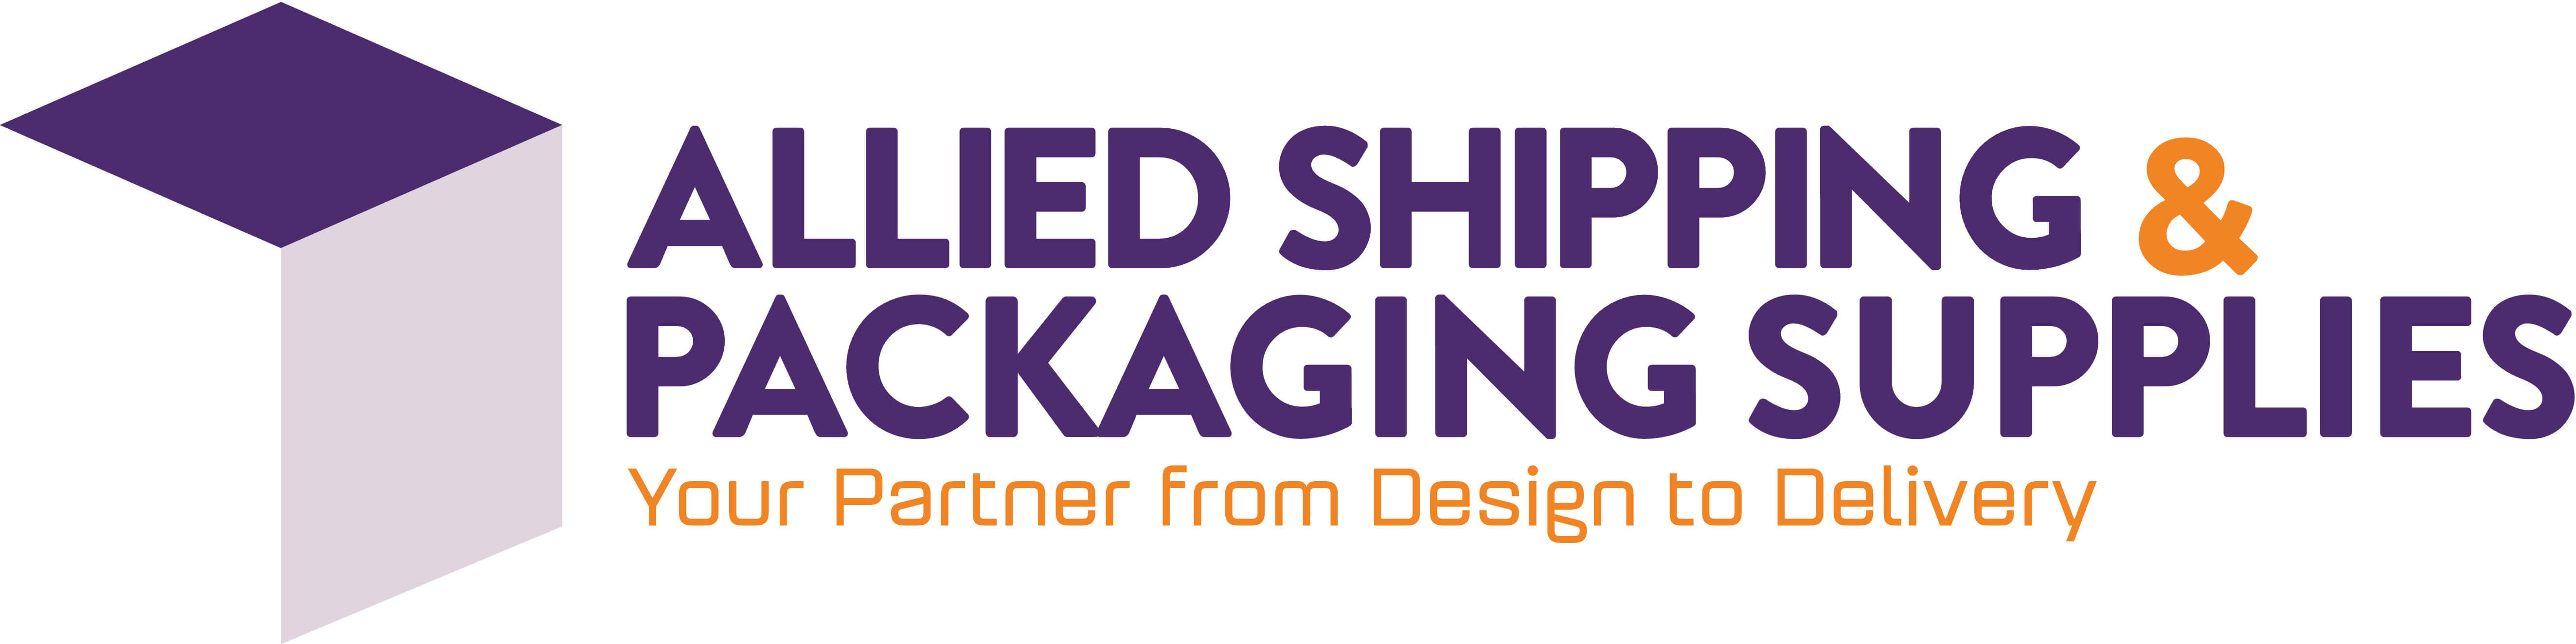 Allied Shipping and Packaging Supplies